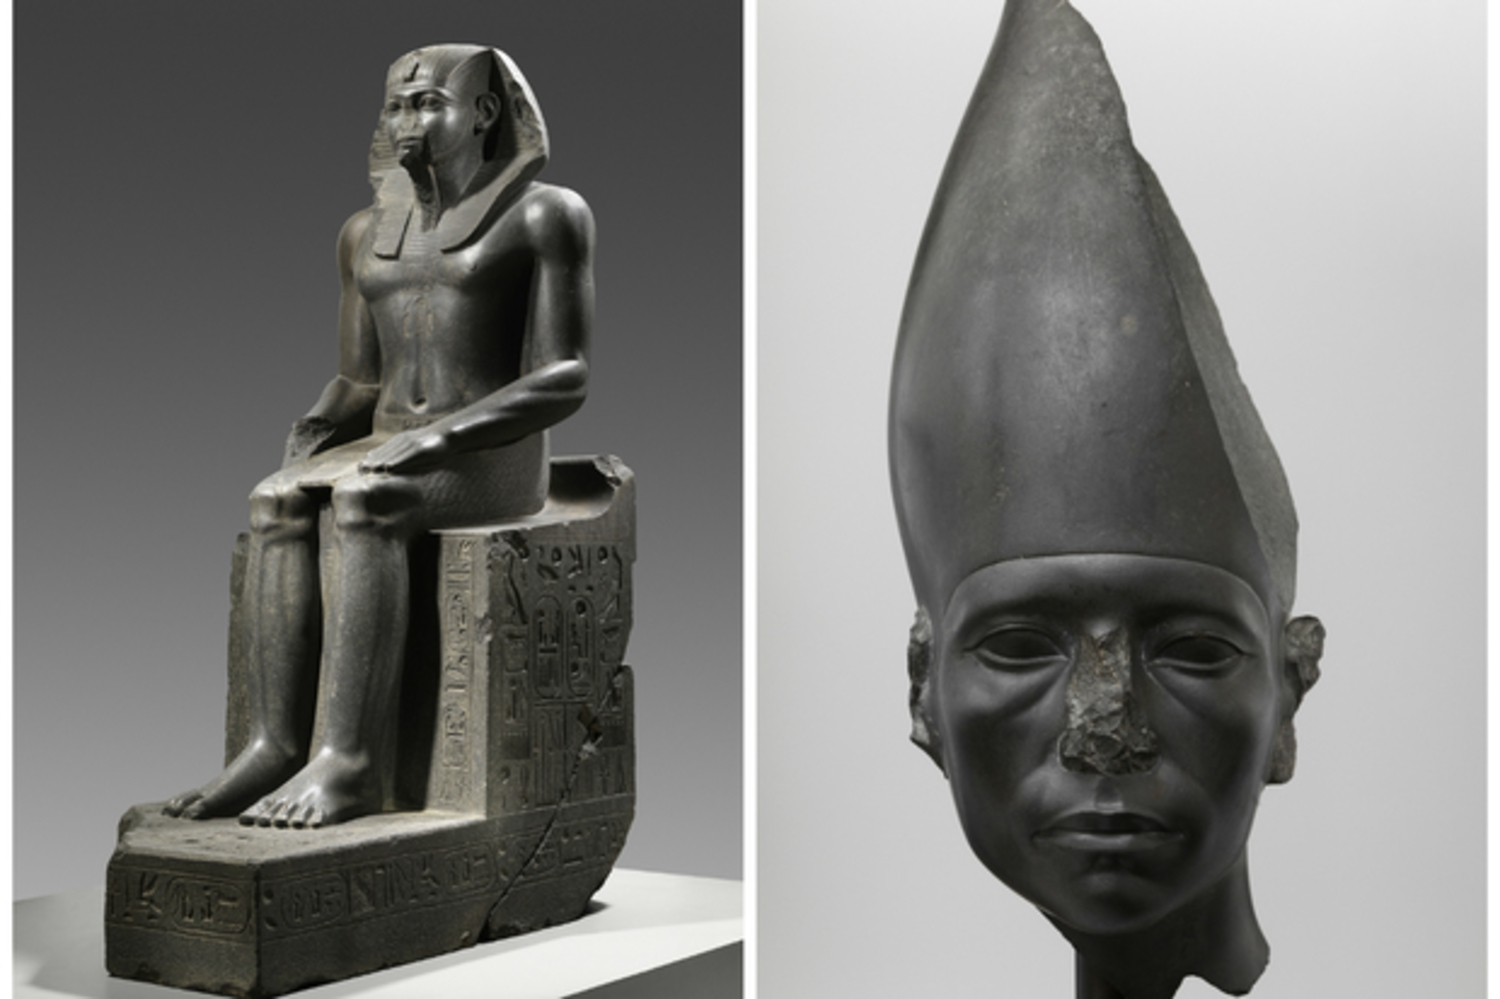 Relics from Egypt's Middle Kingdom will be on display starting in October at the Met.